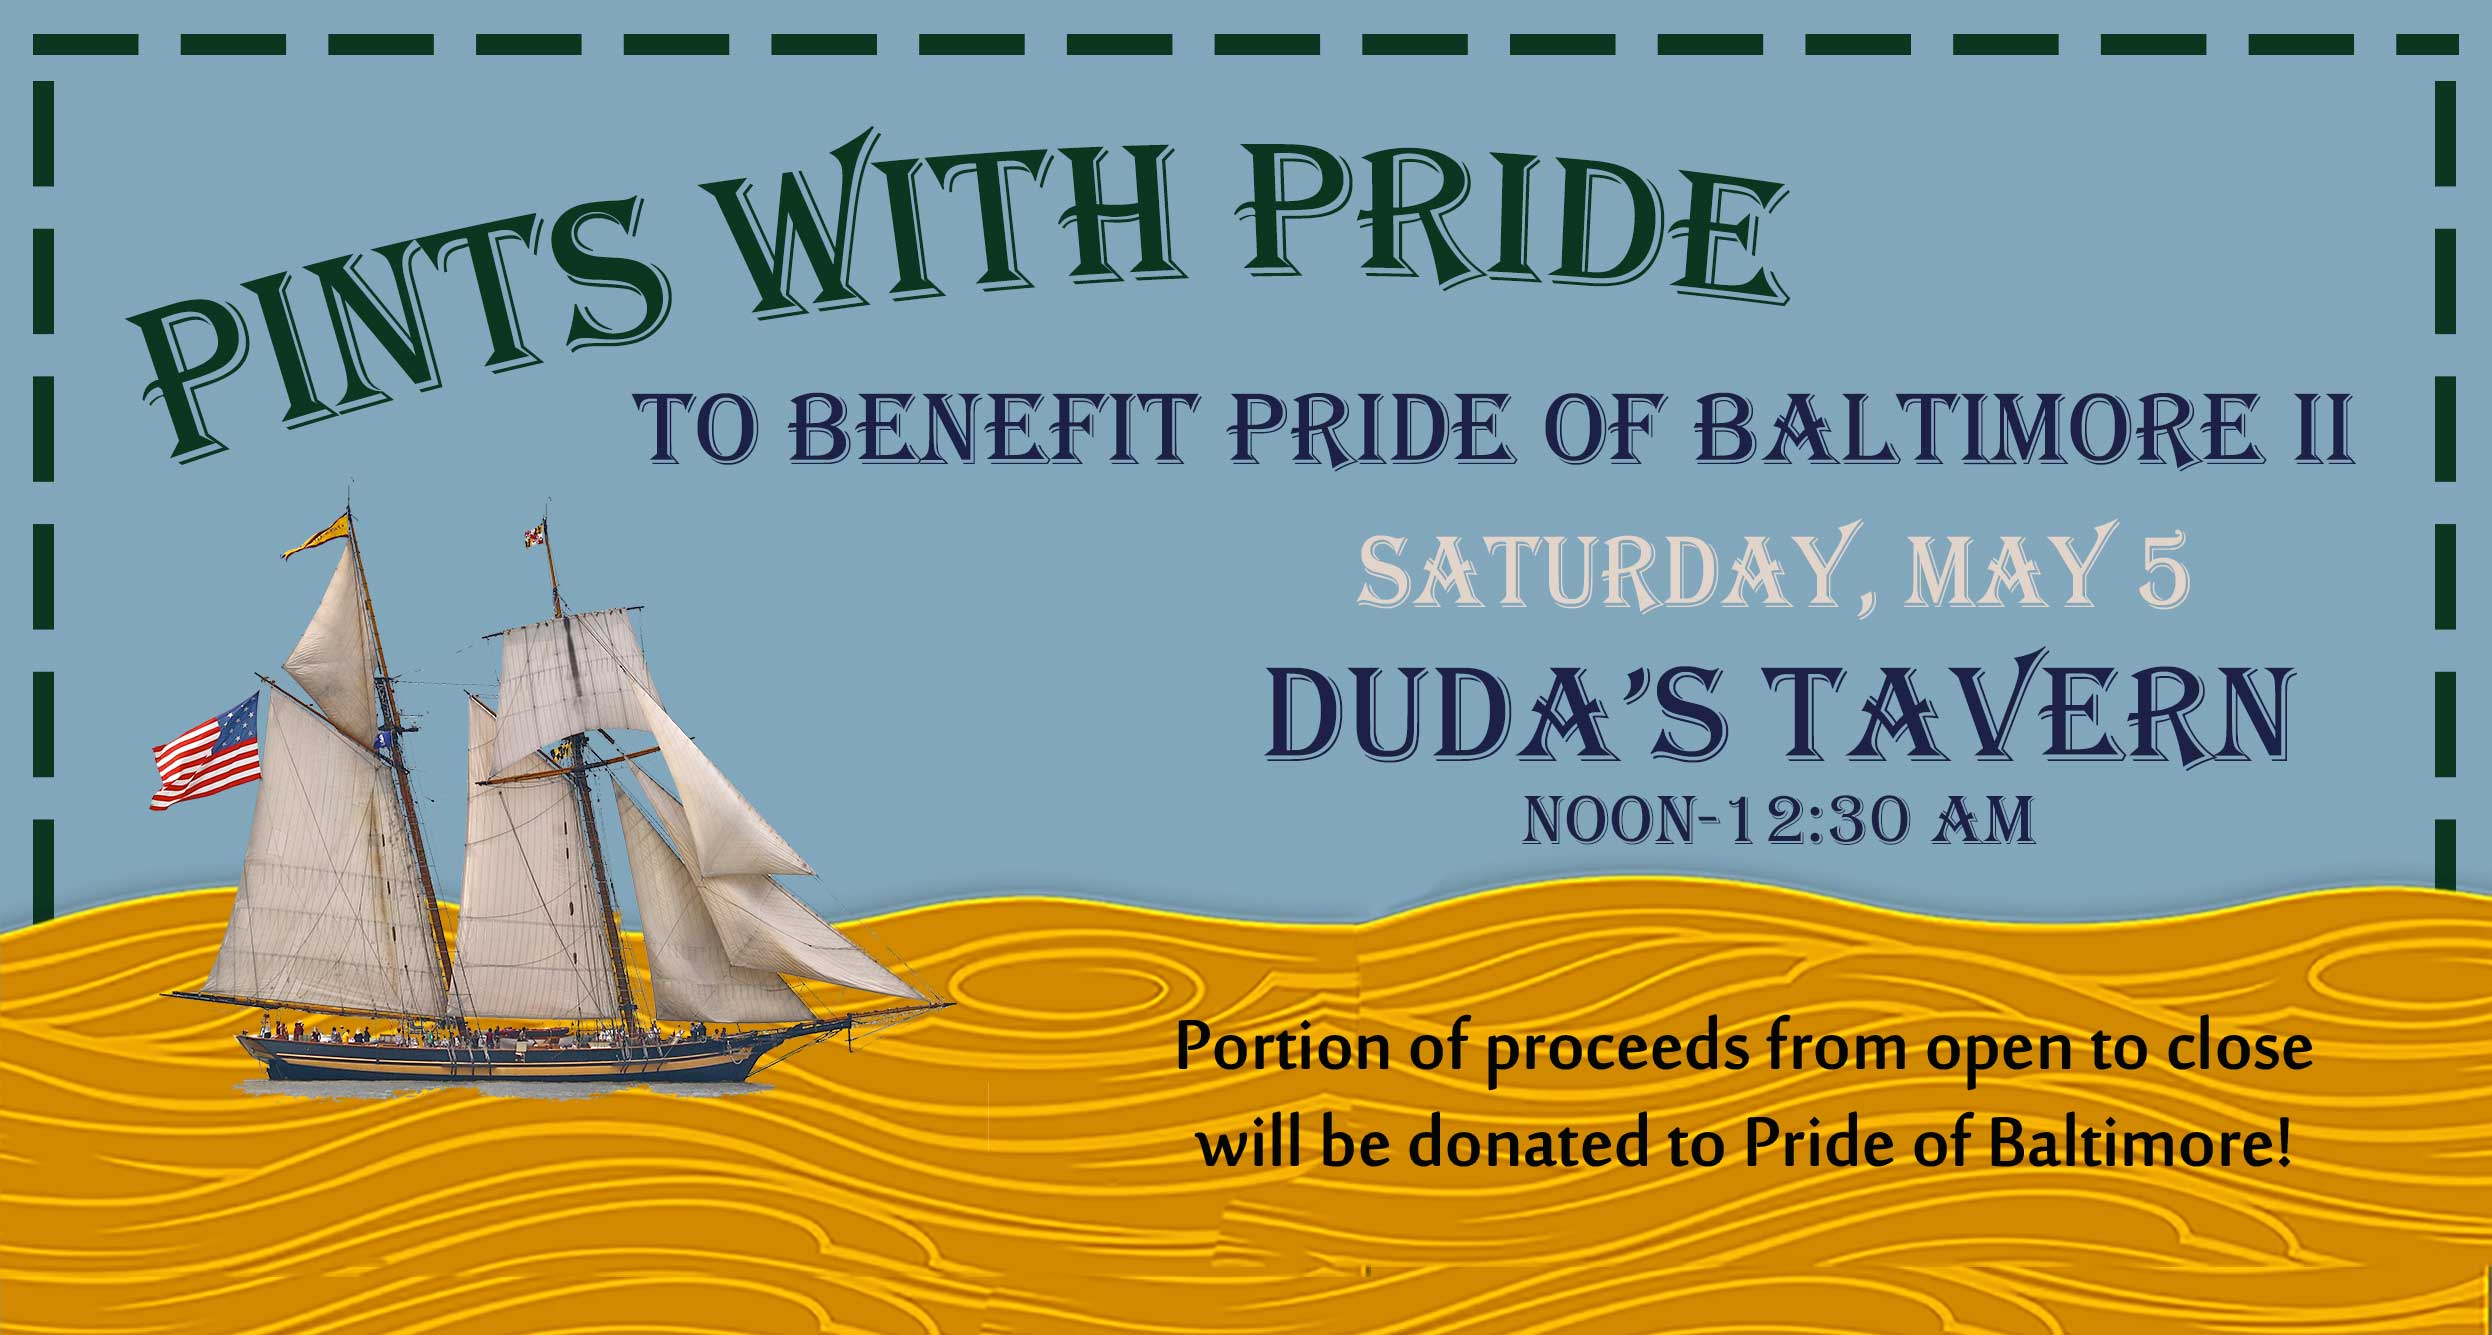 Pints with Pride at Duda's Tavern May 5, 2018